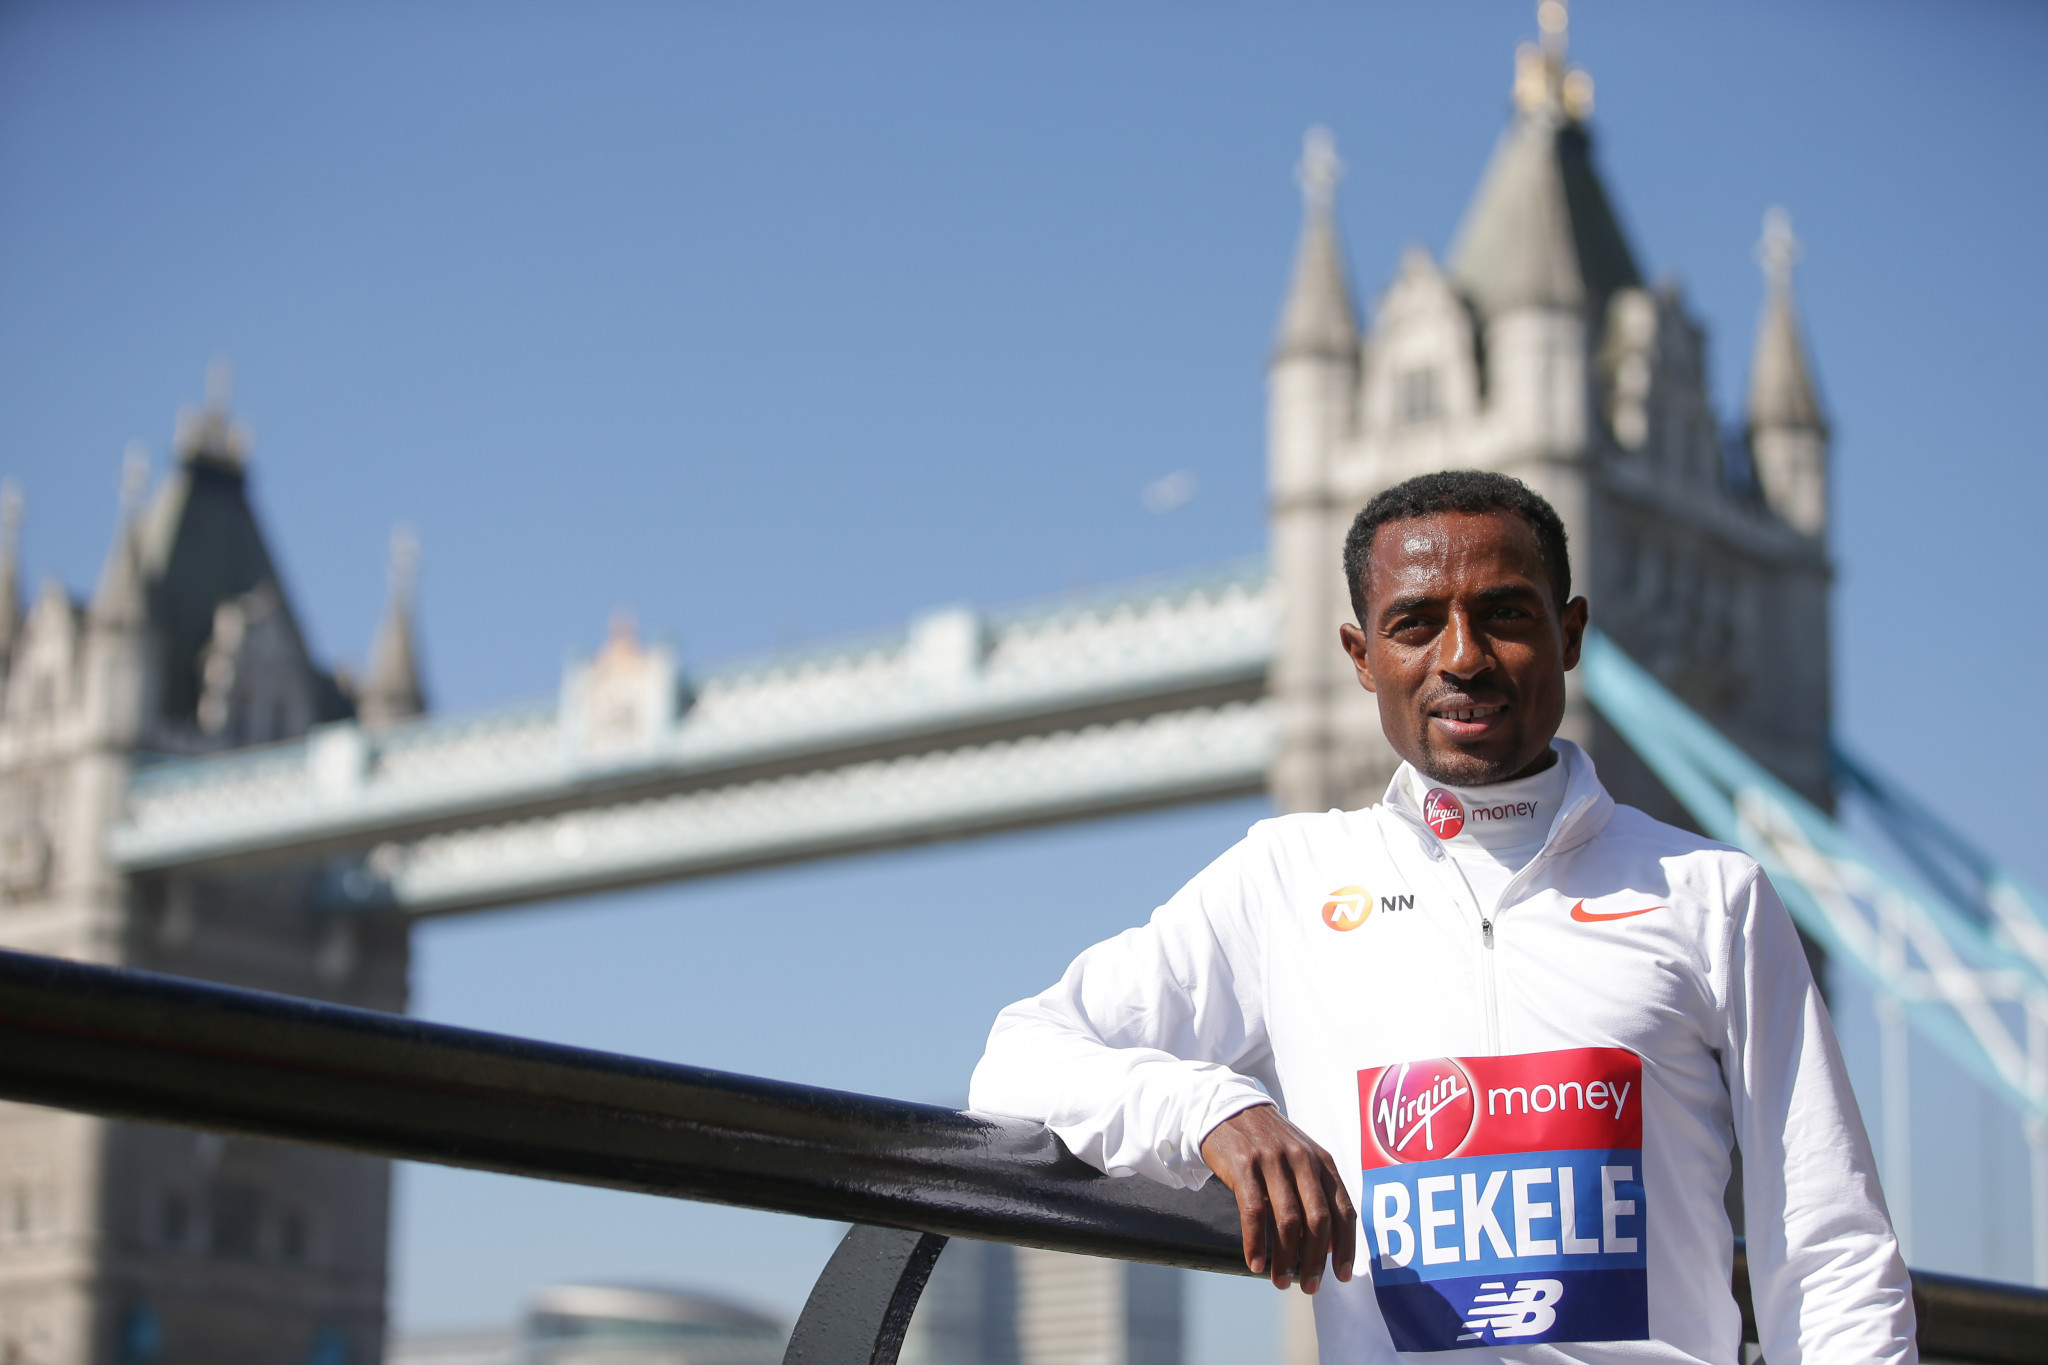 Bekele pulls out of 40th London Marathon with calf injury